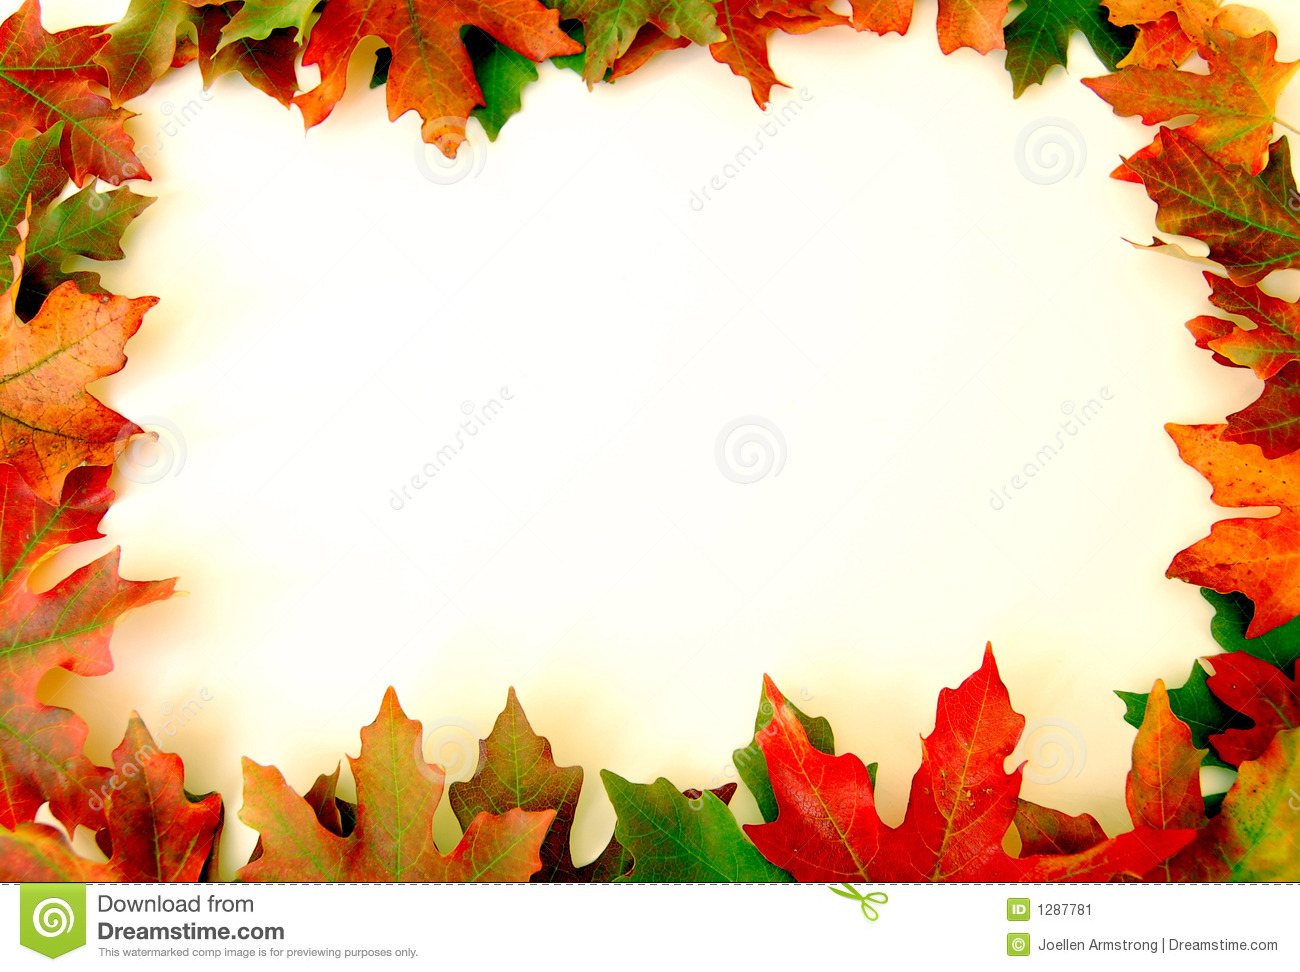 Autumn leaves on white background on border of photo 1300x972